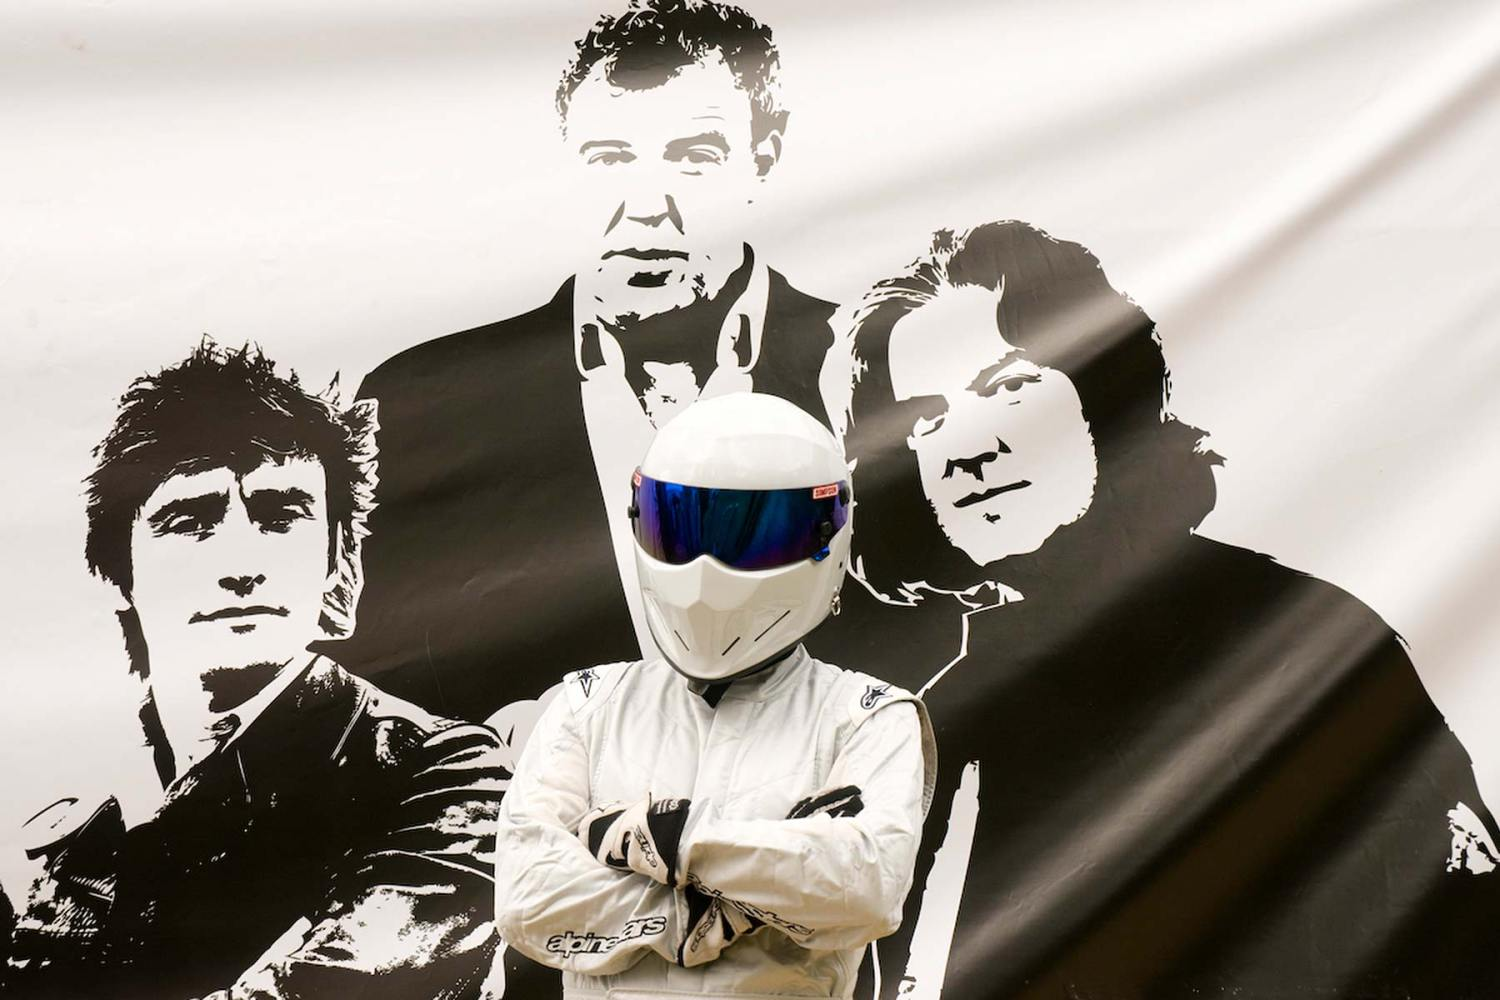 Top Gear presenters and The Stig